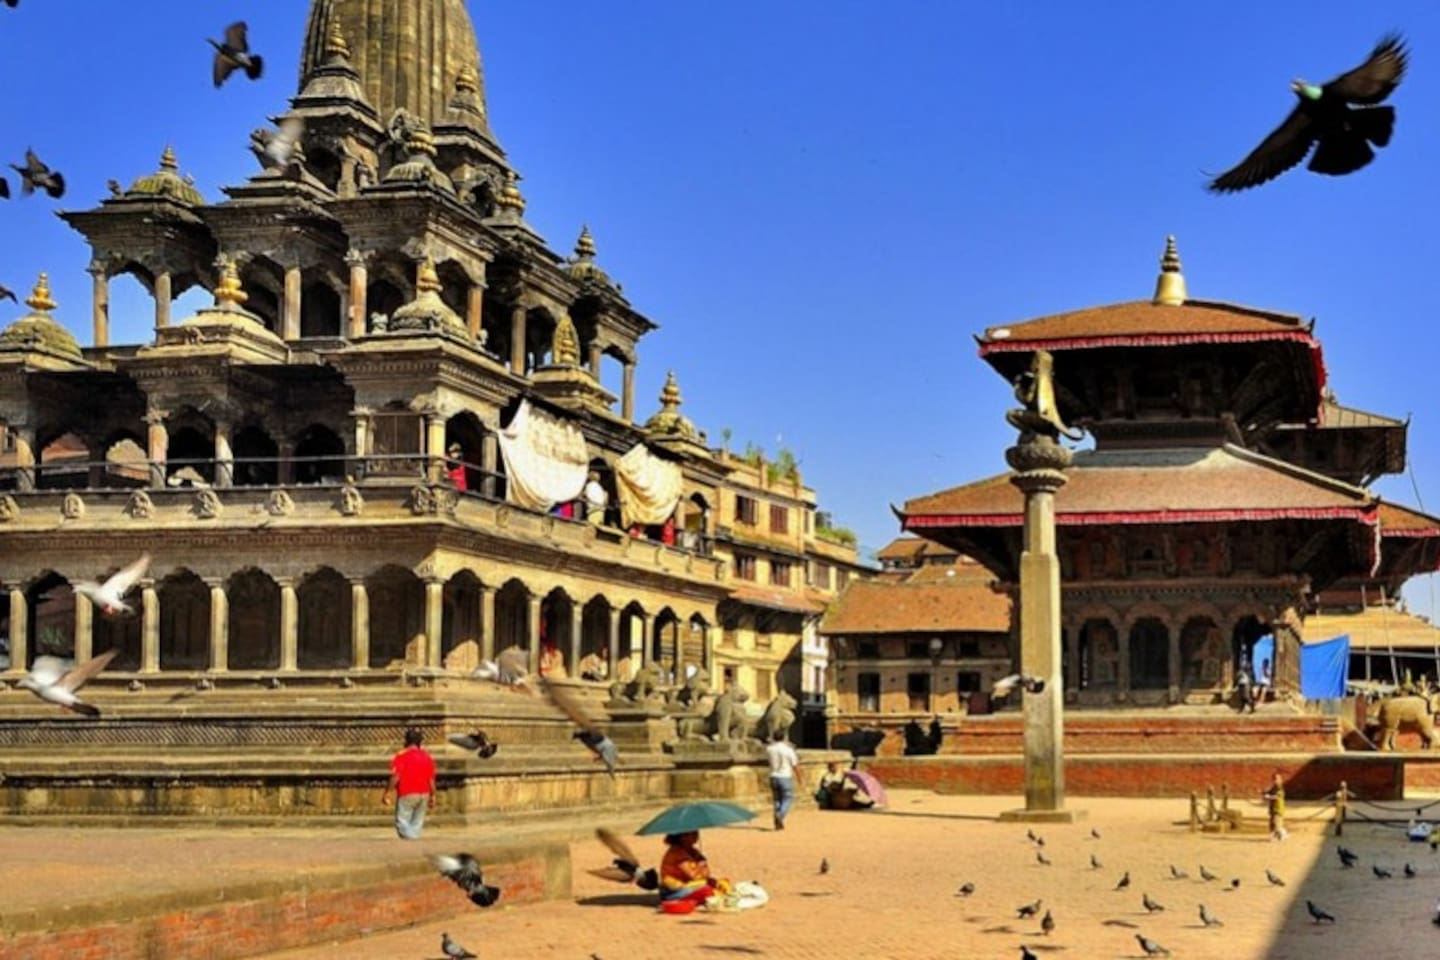 Patan, with its many temples and impressive buildings, is a great place for sight-seeing.